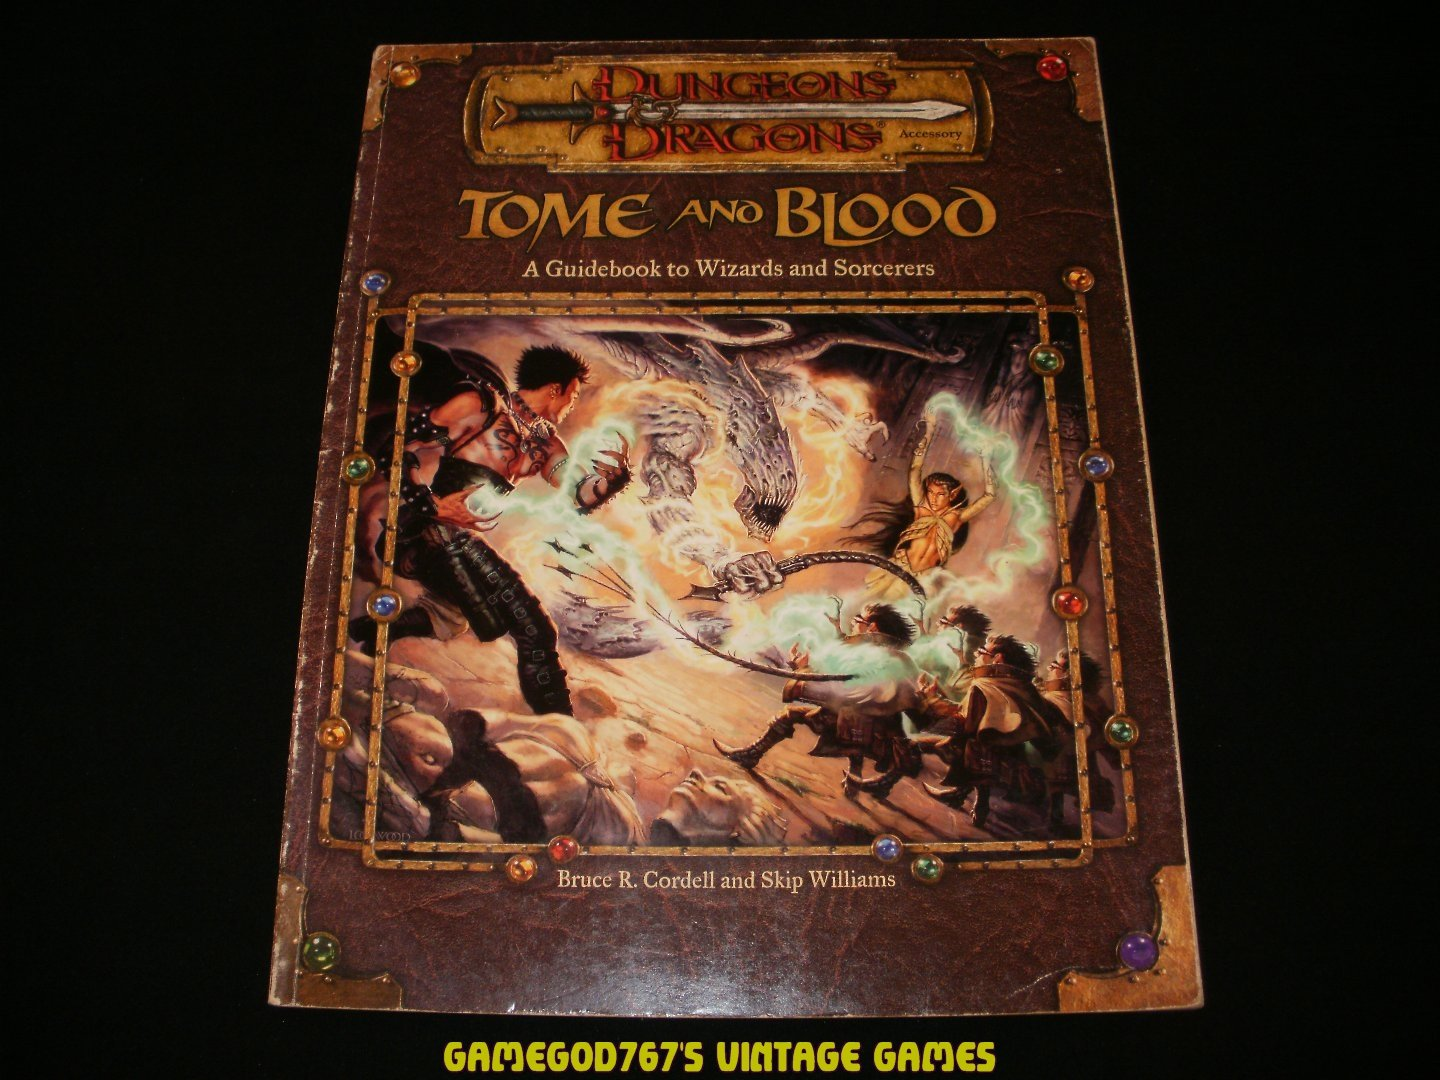 Tome and Blood - Bruce R. Cordell and Skip Williams (2001) - Dungeons and Dragons Paperback